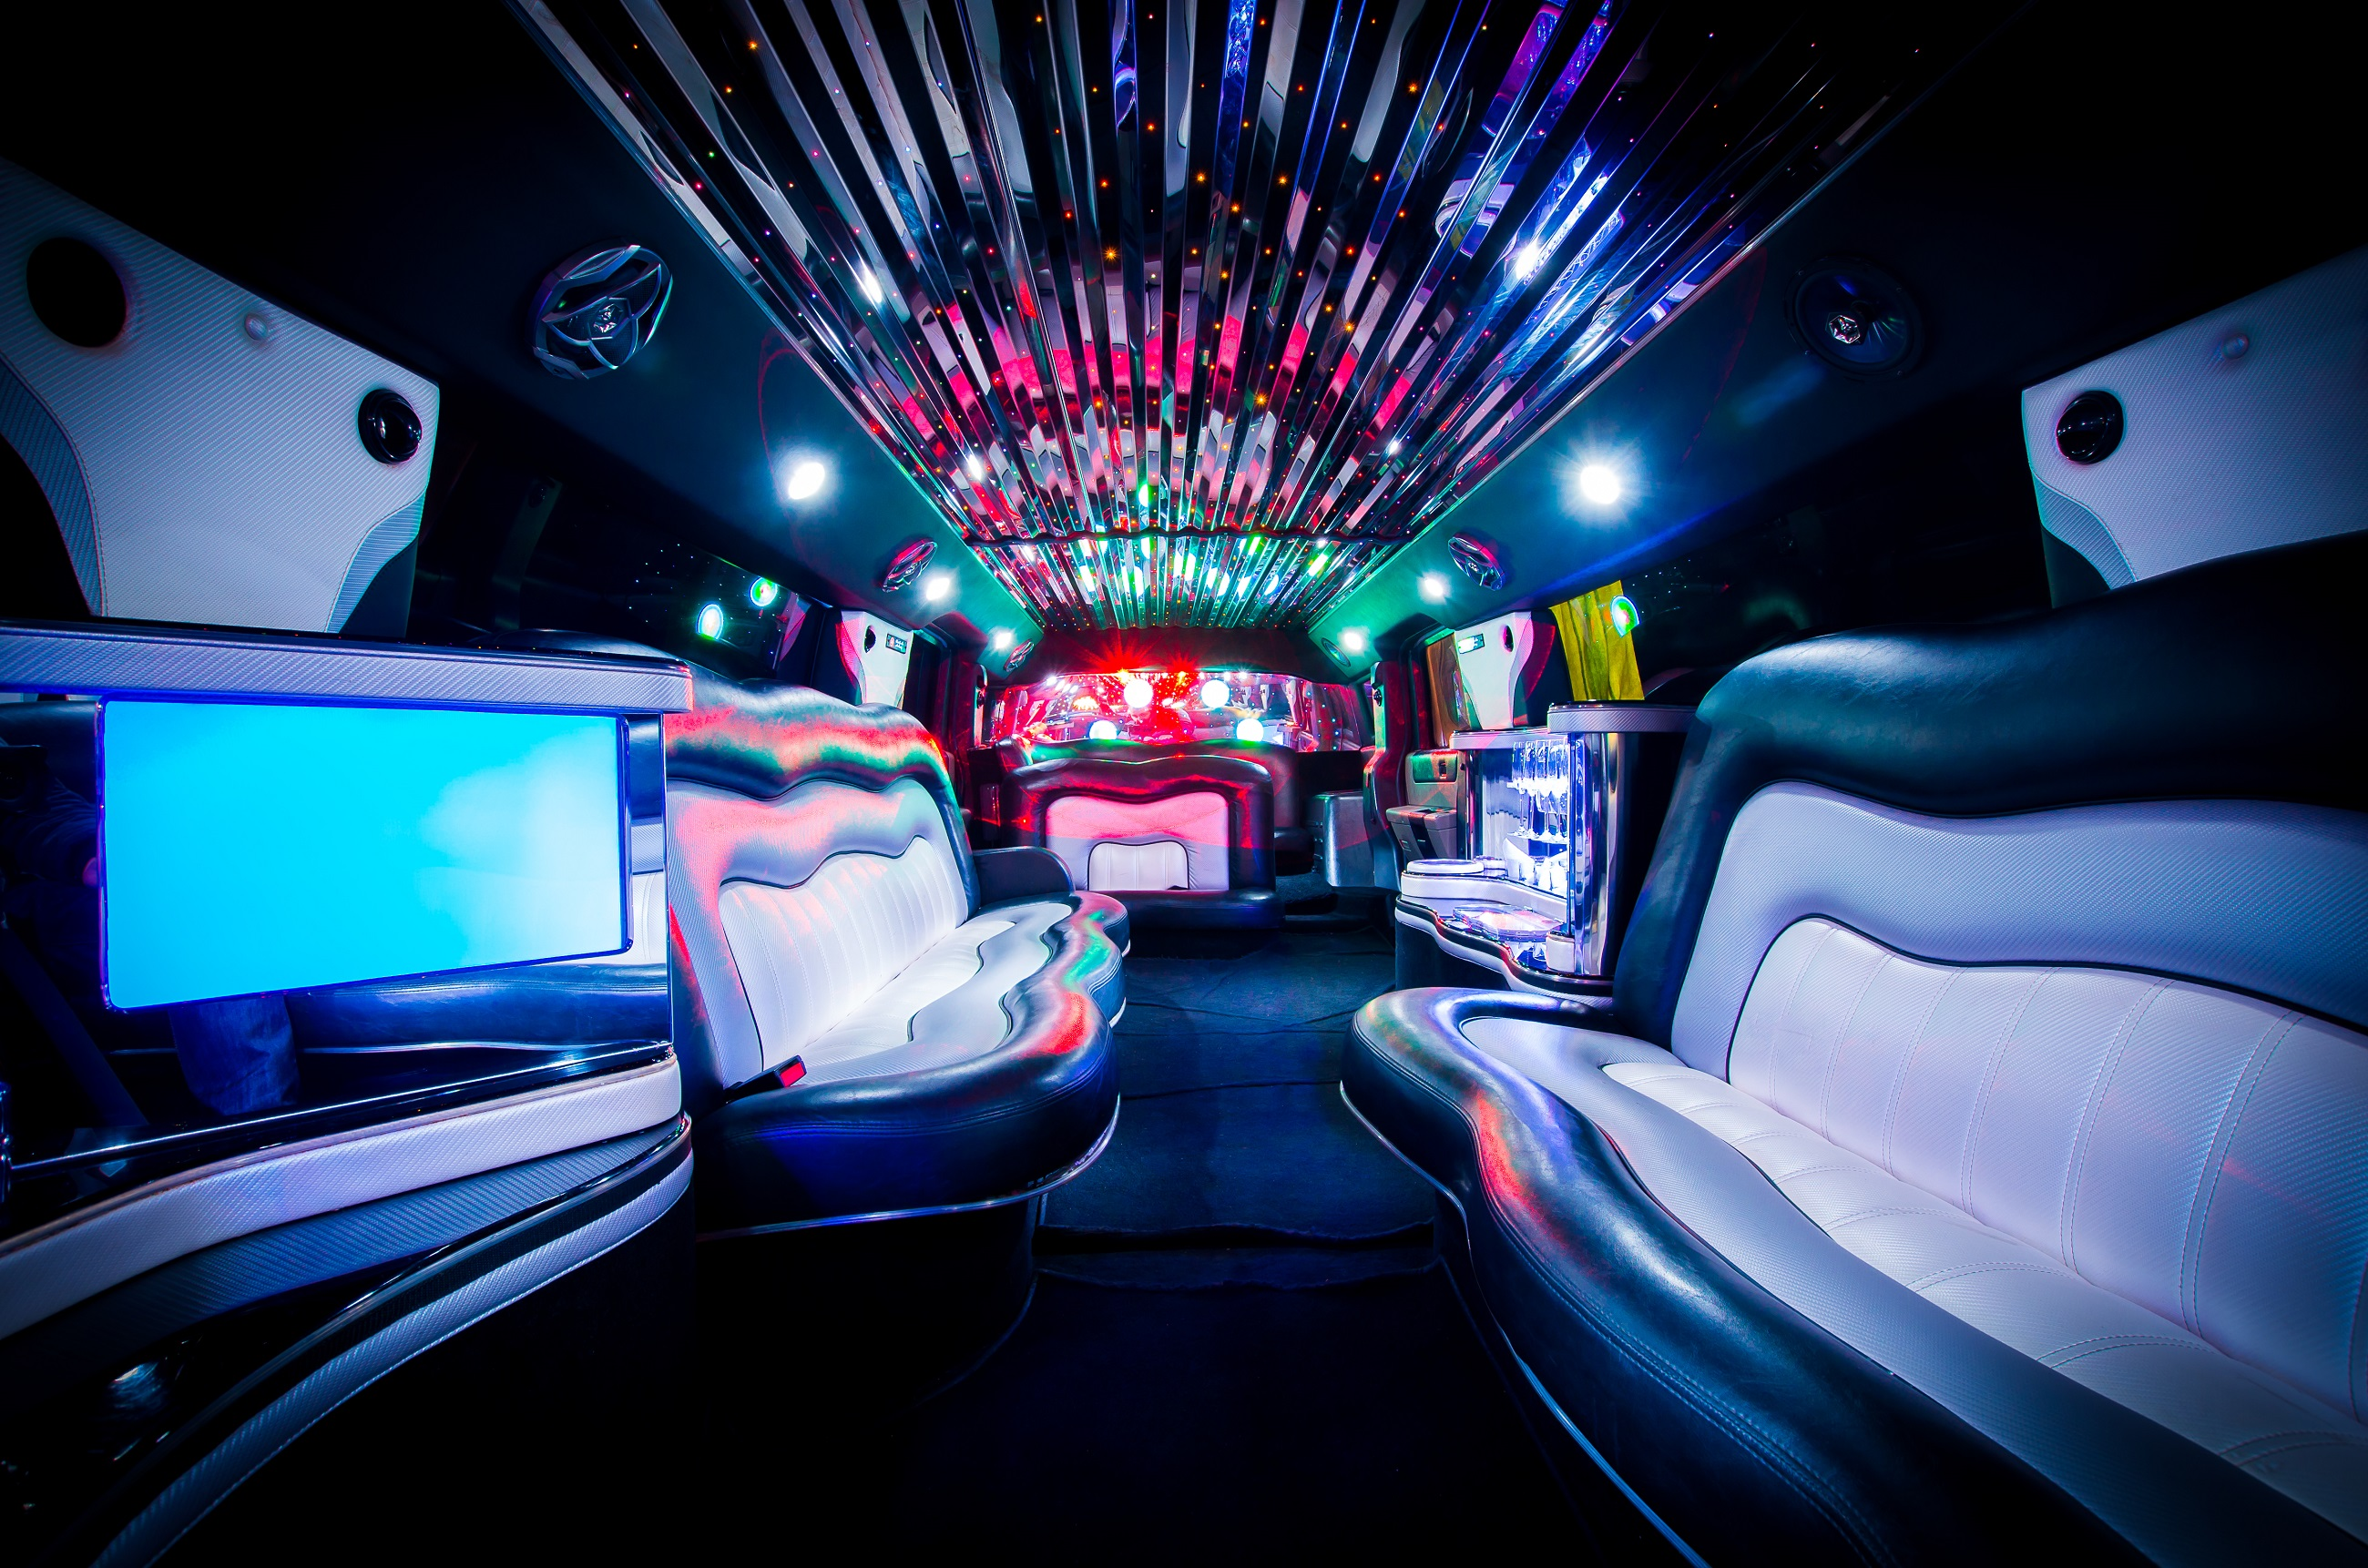 hummer h2 stretchlimousine in dortmund stretchlimousinen partybus und oldtimer verleih. Black Bedroom Furniture Sets. Home Design Ideas